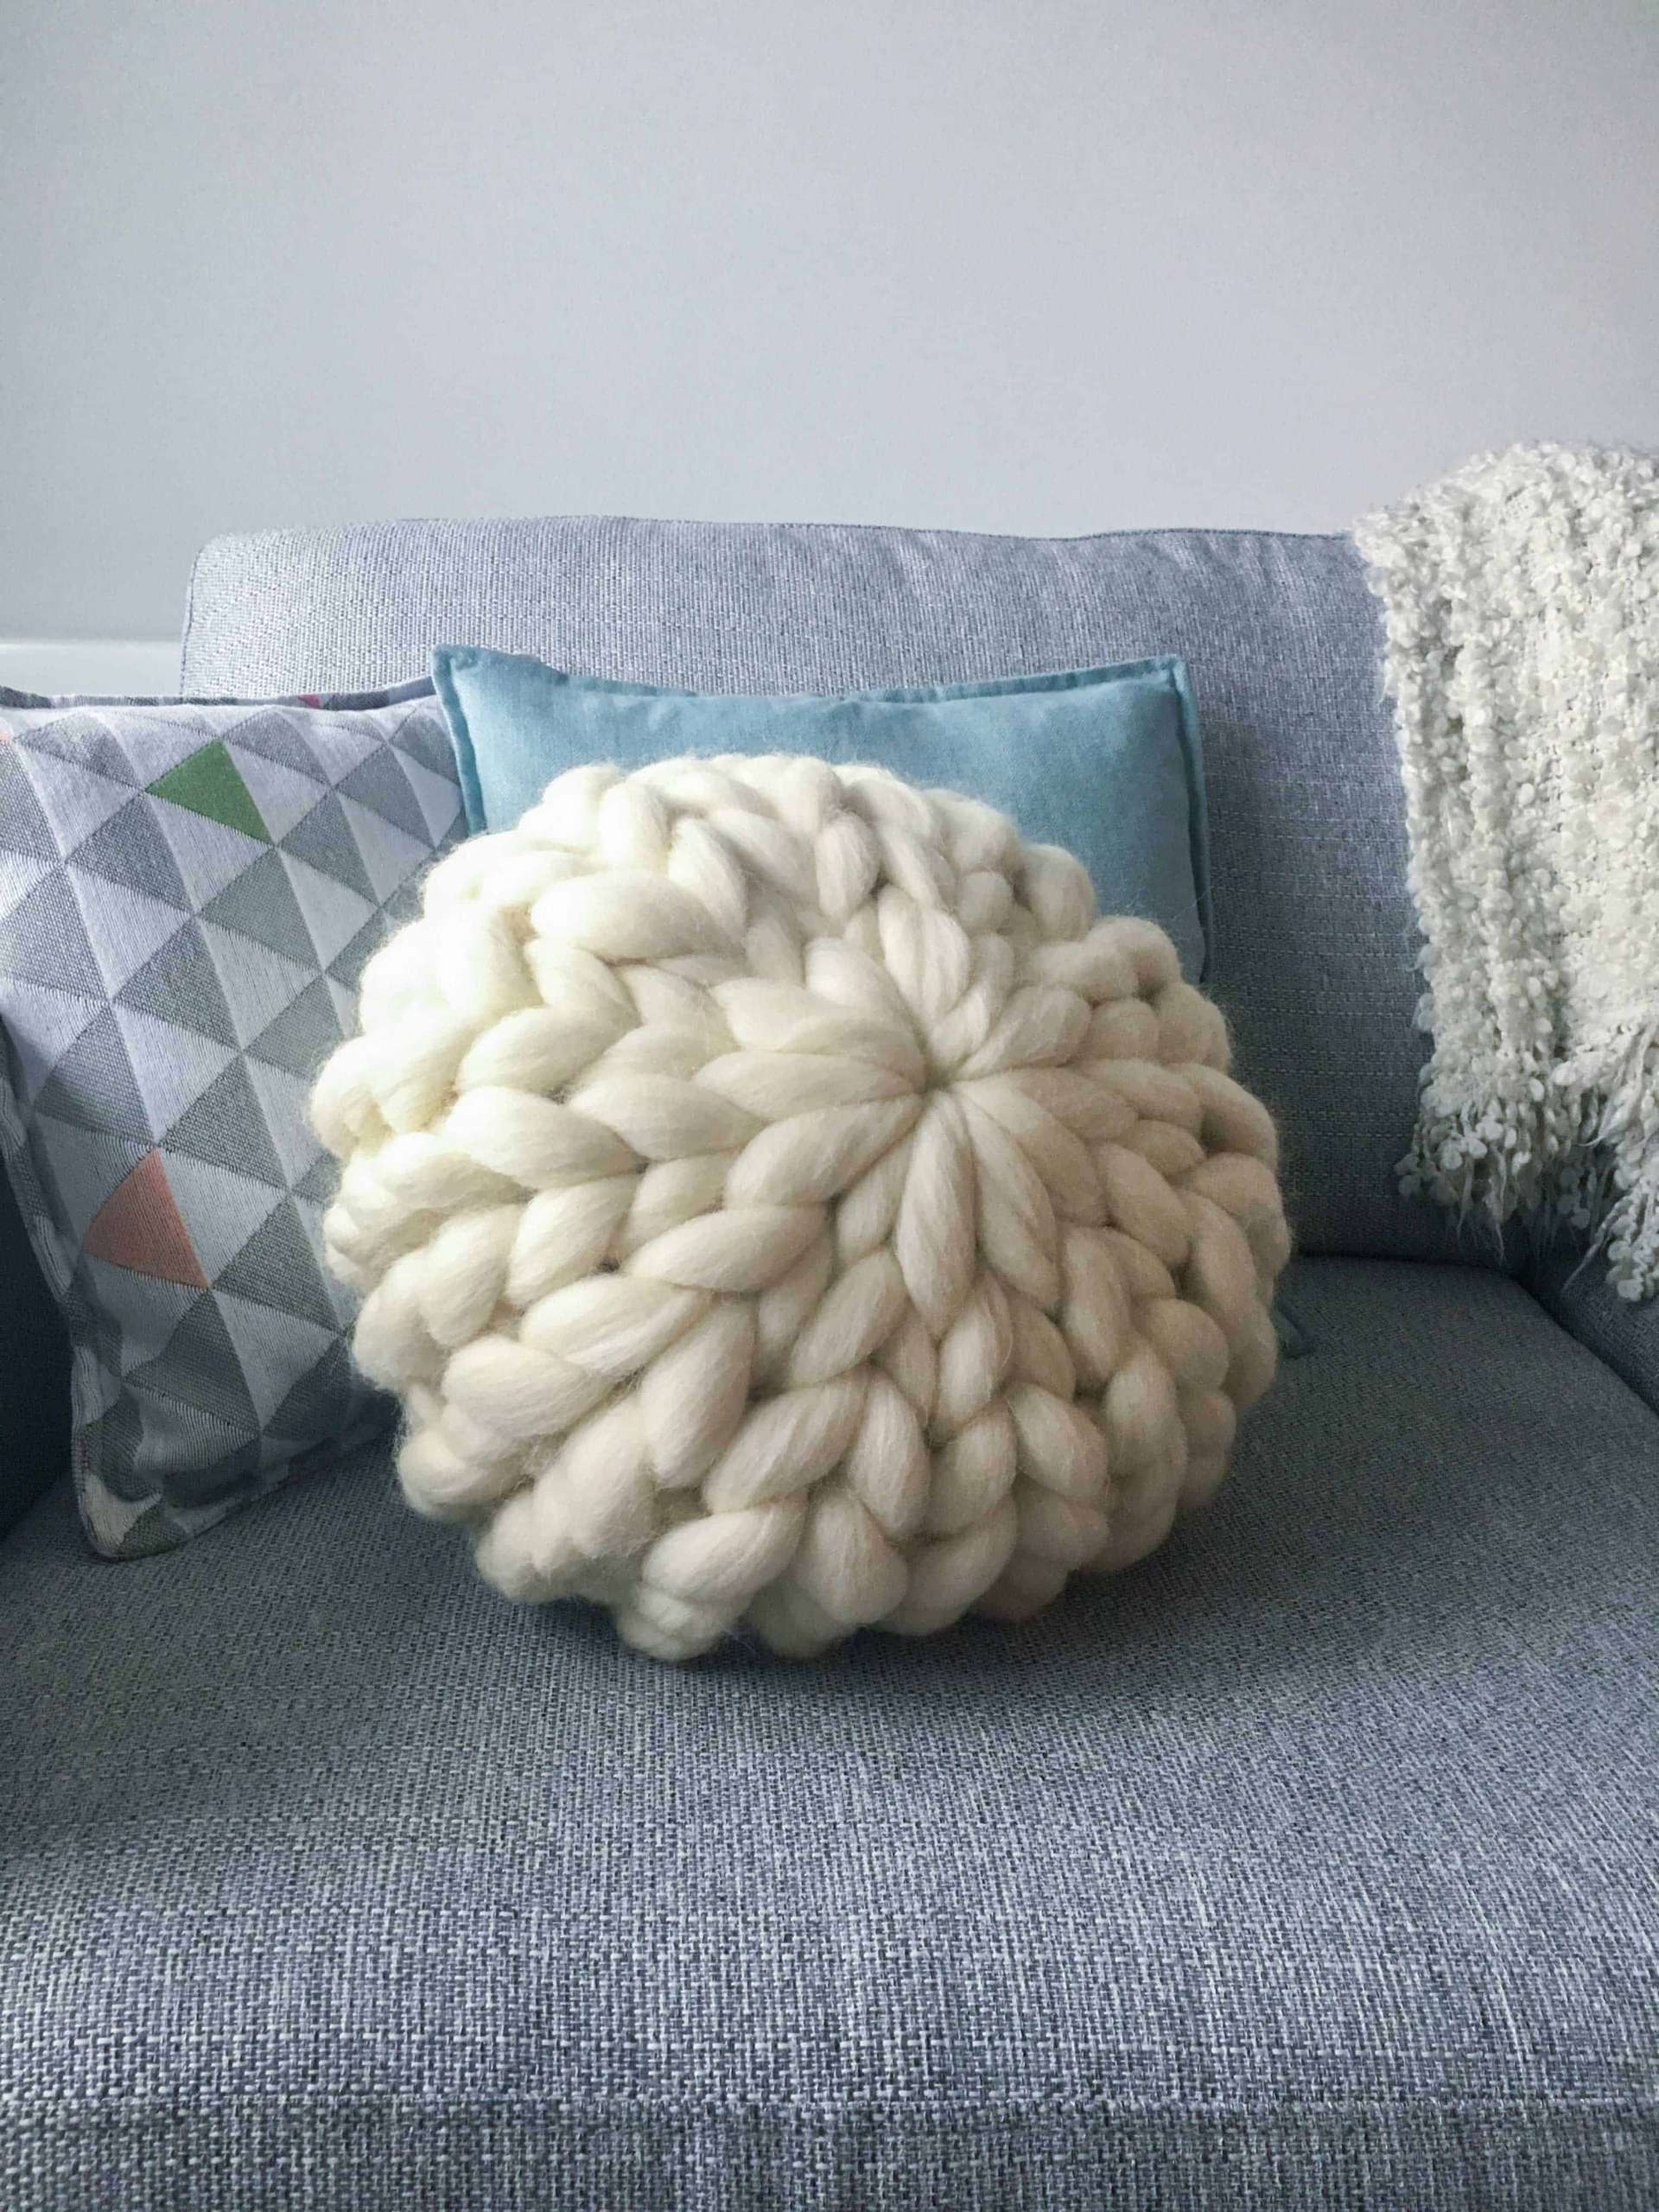 Giant Knit Pillows Off The Wool